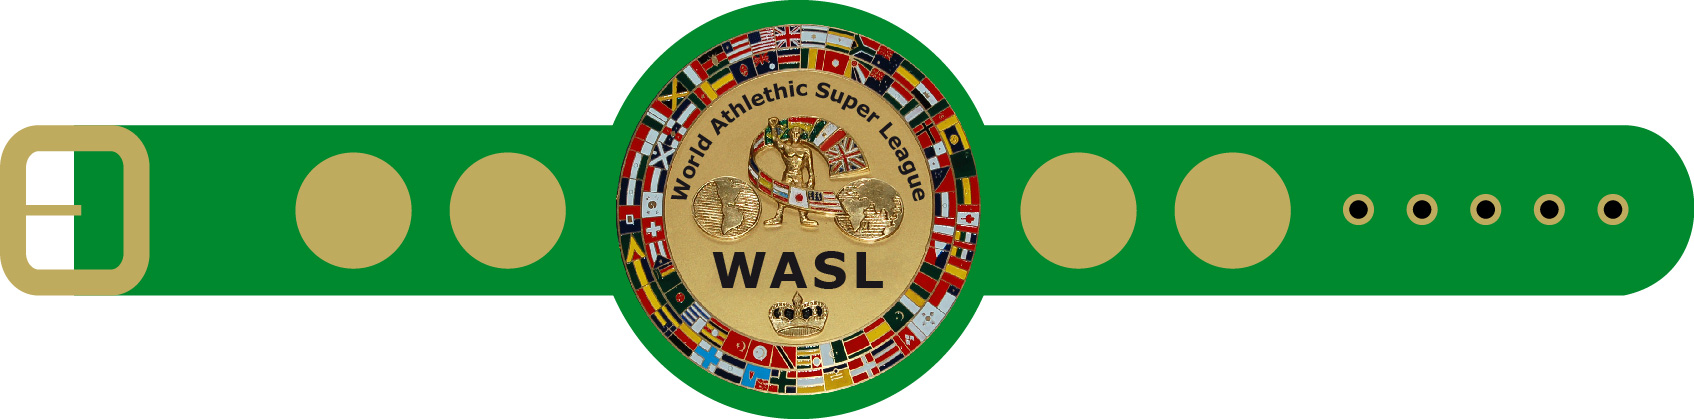 WASL - World Athletic Super League Champion Gürtel